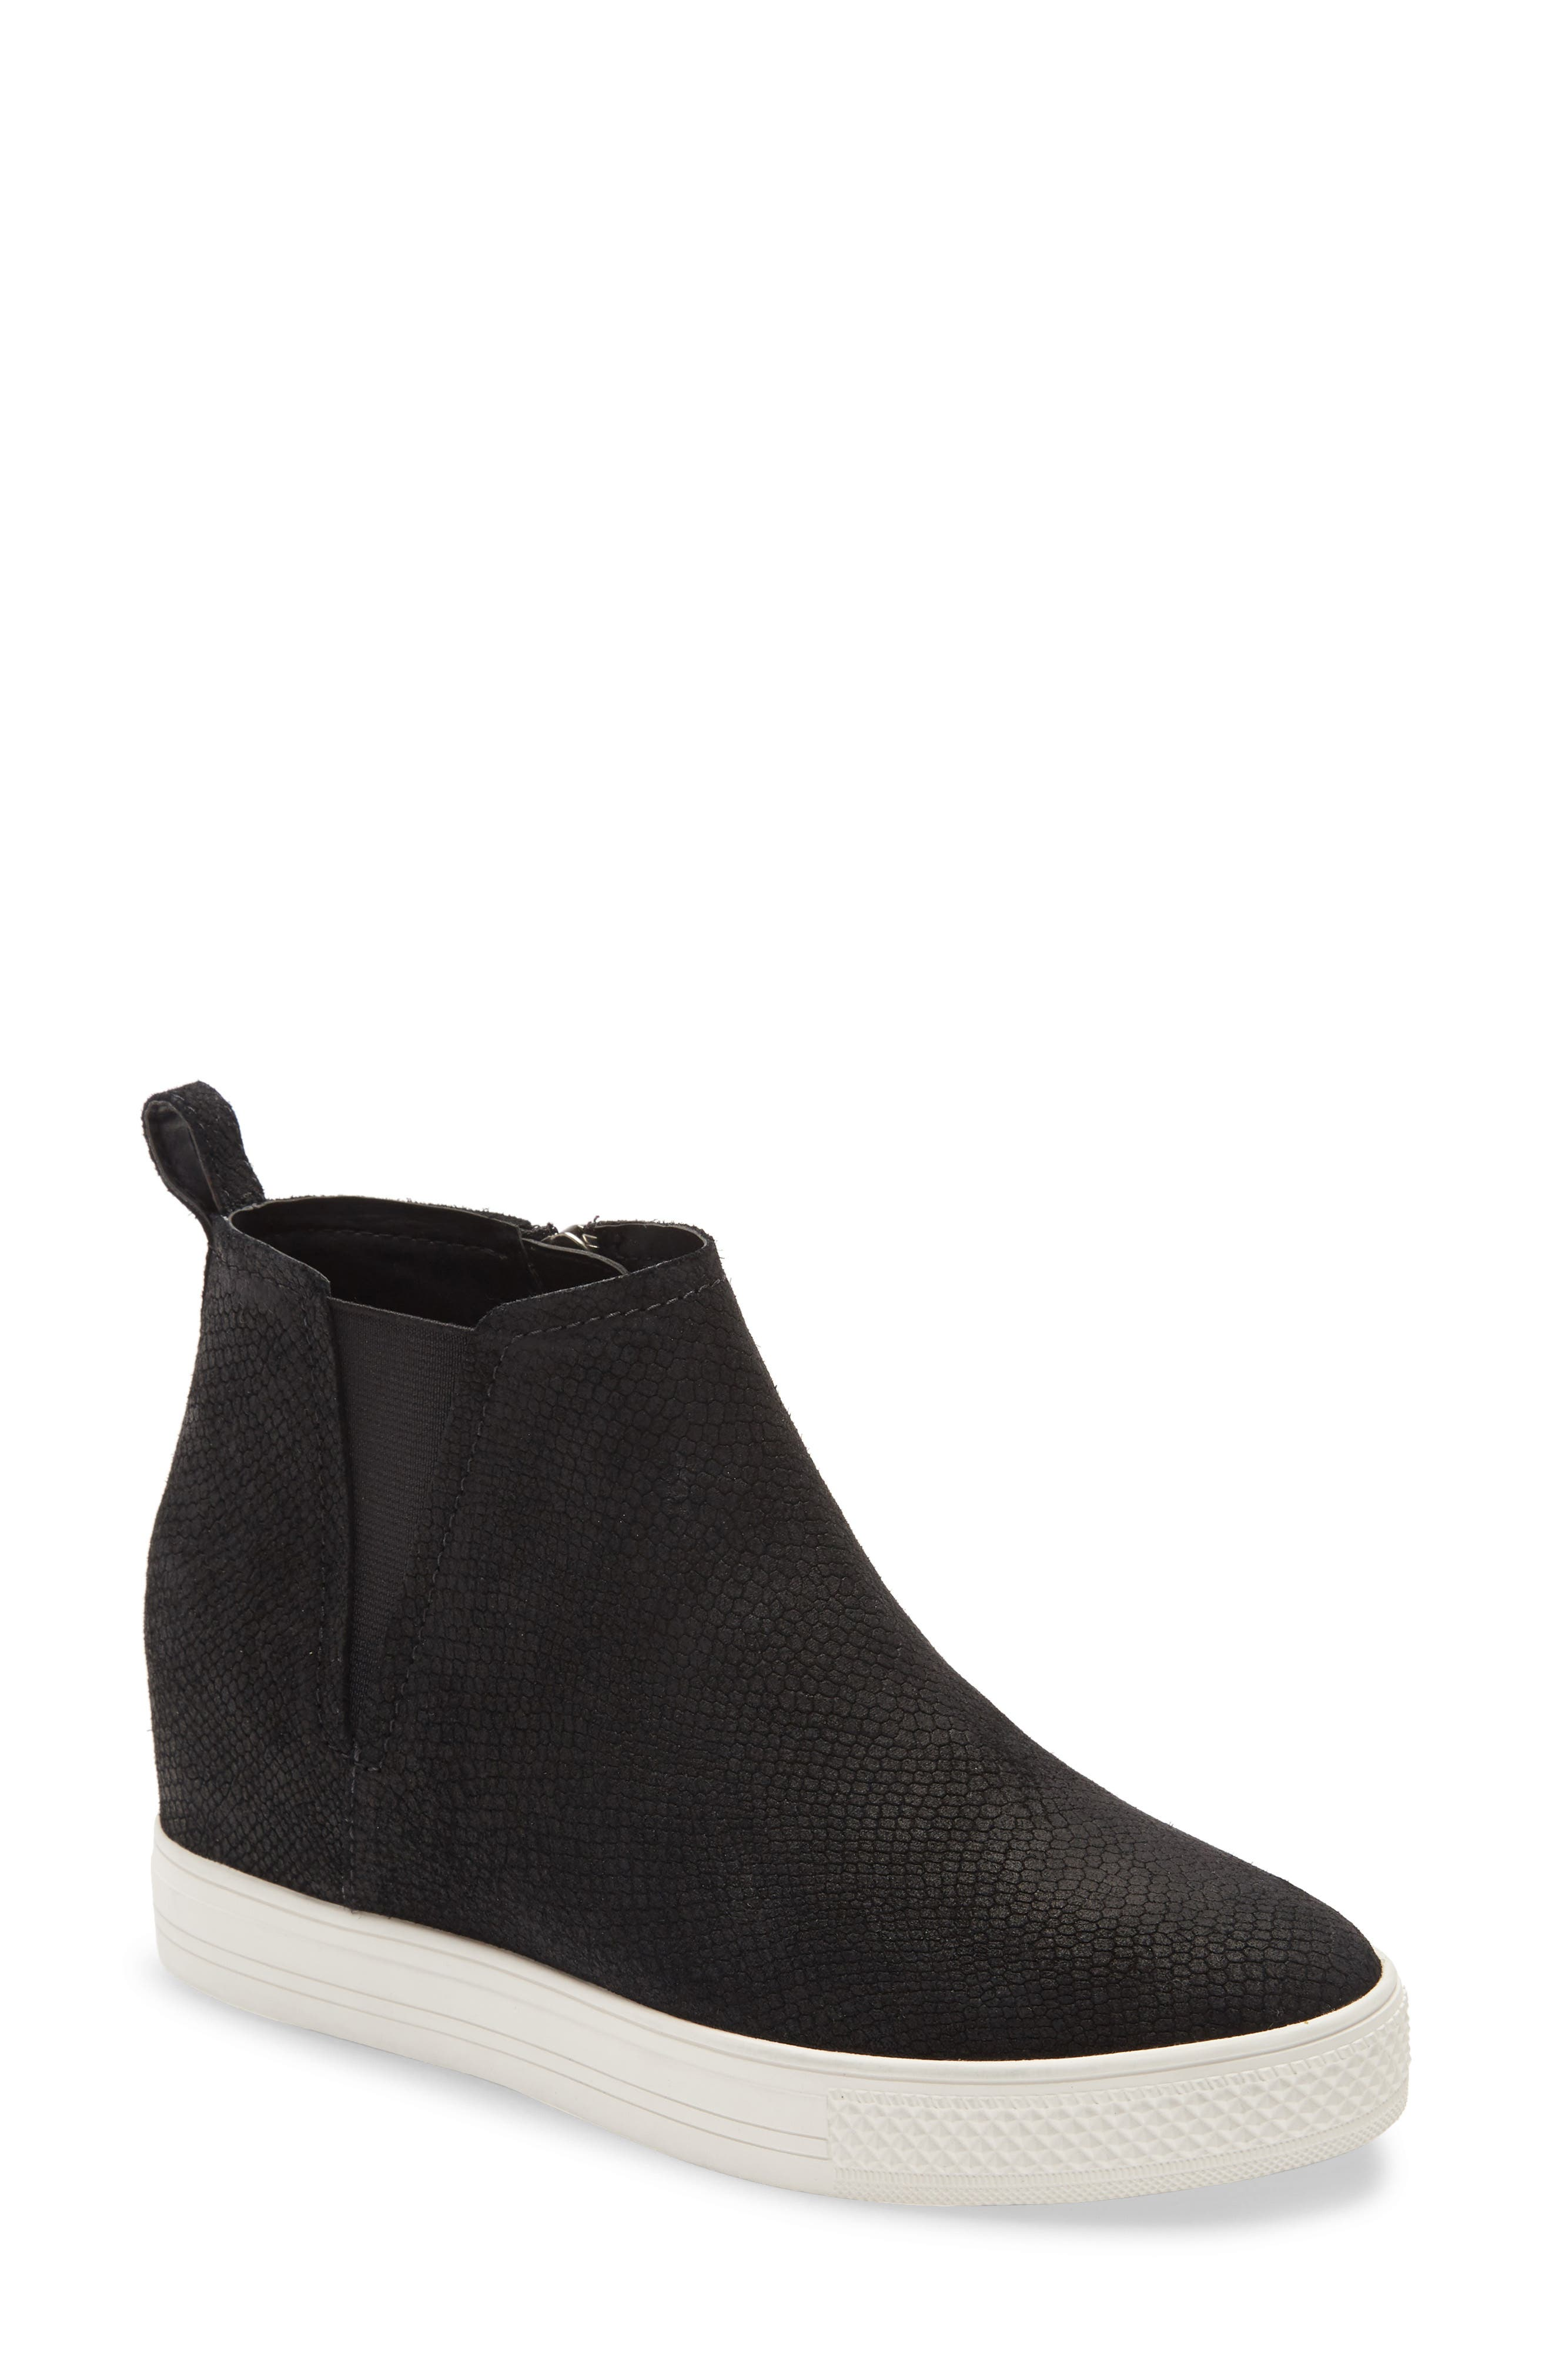 Image of Caslon Aidy Water Resistant Wedge Sneaker